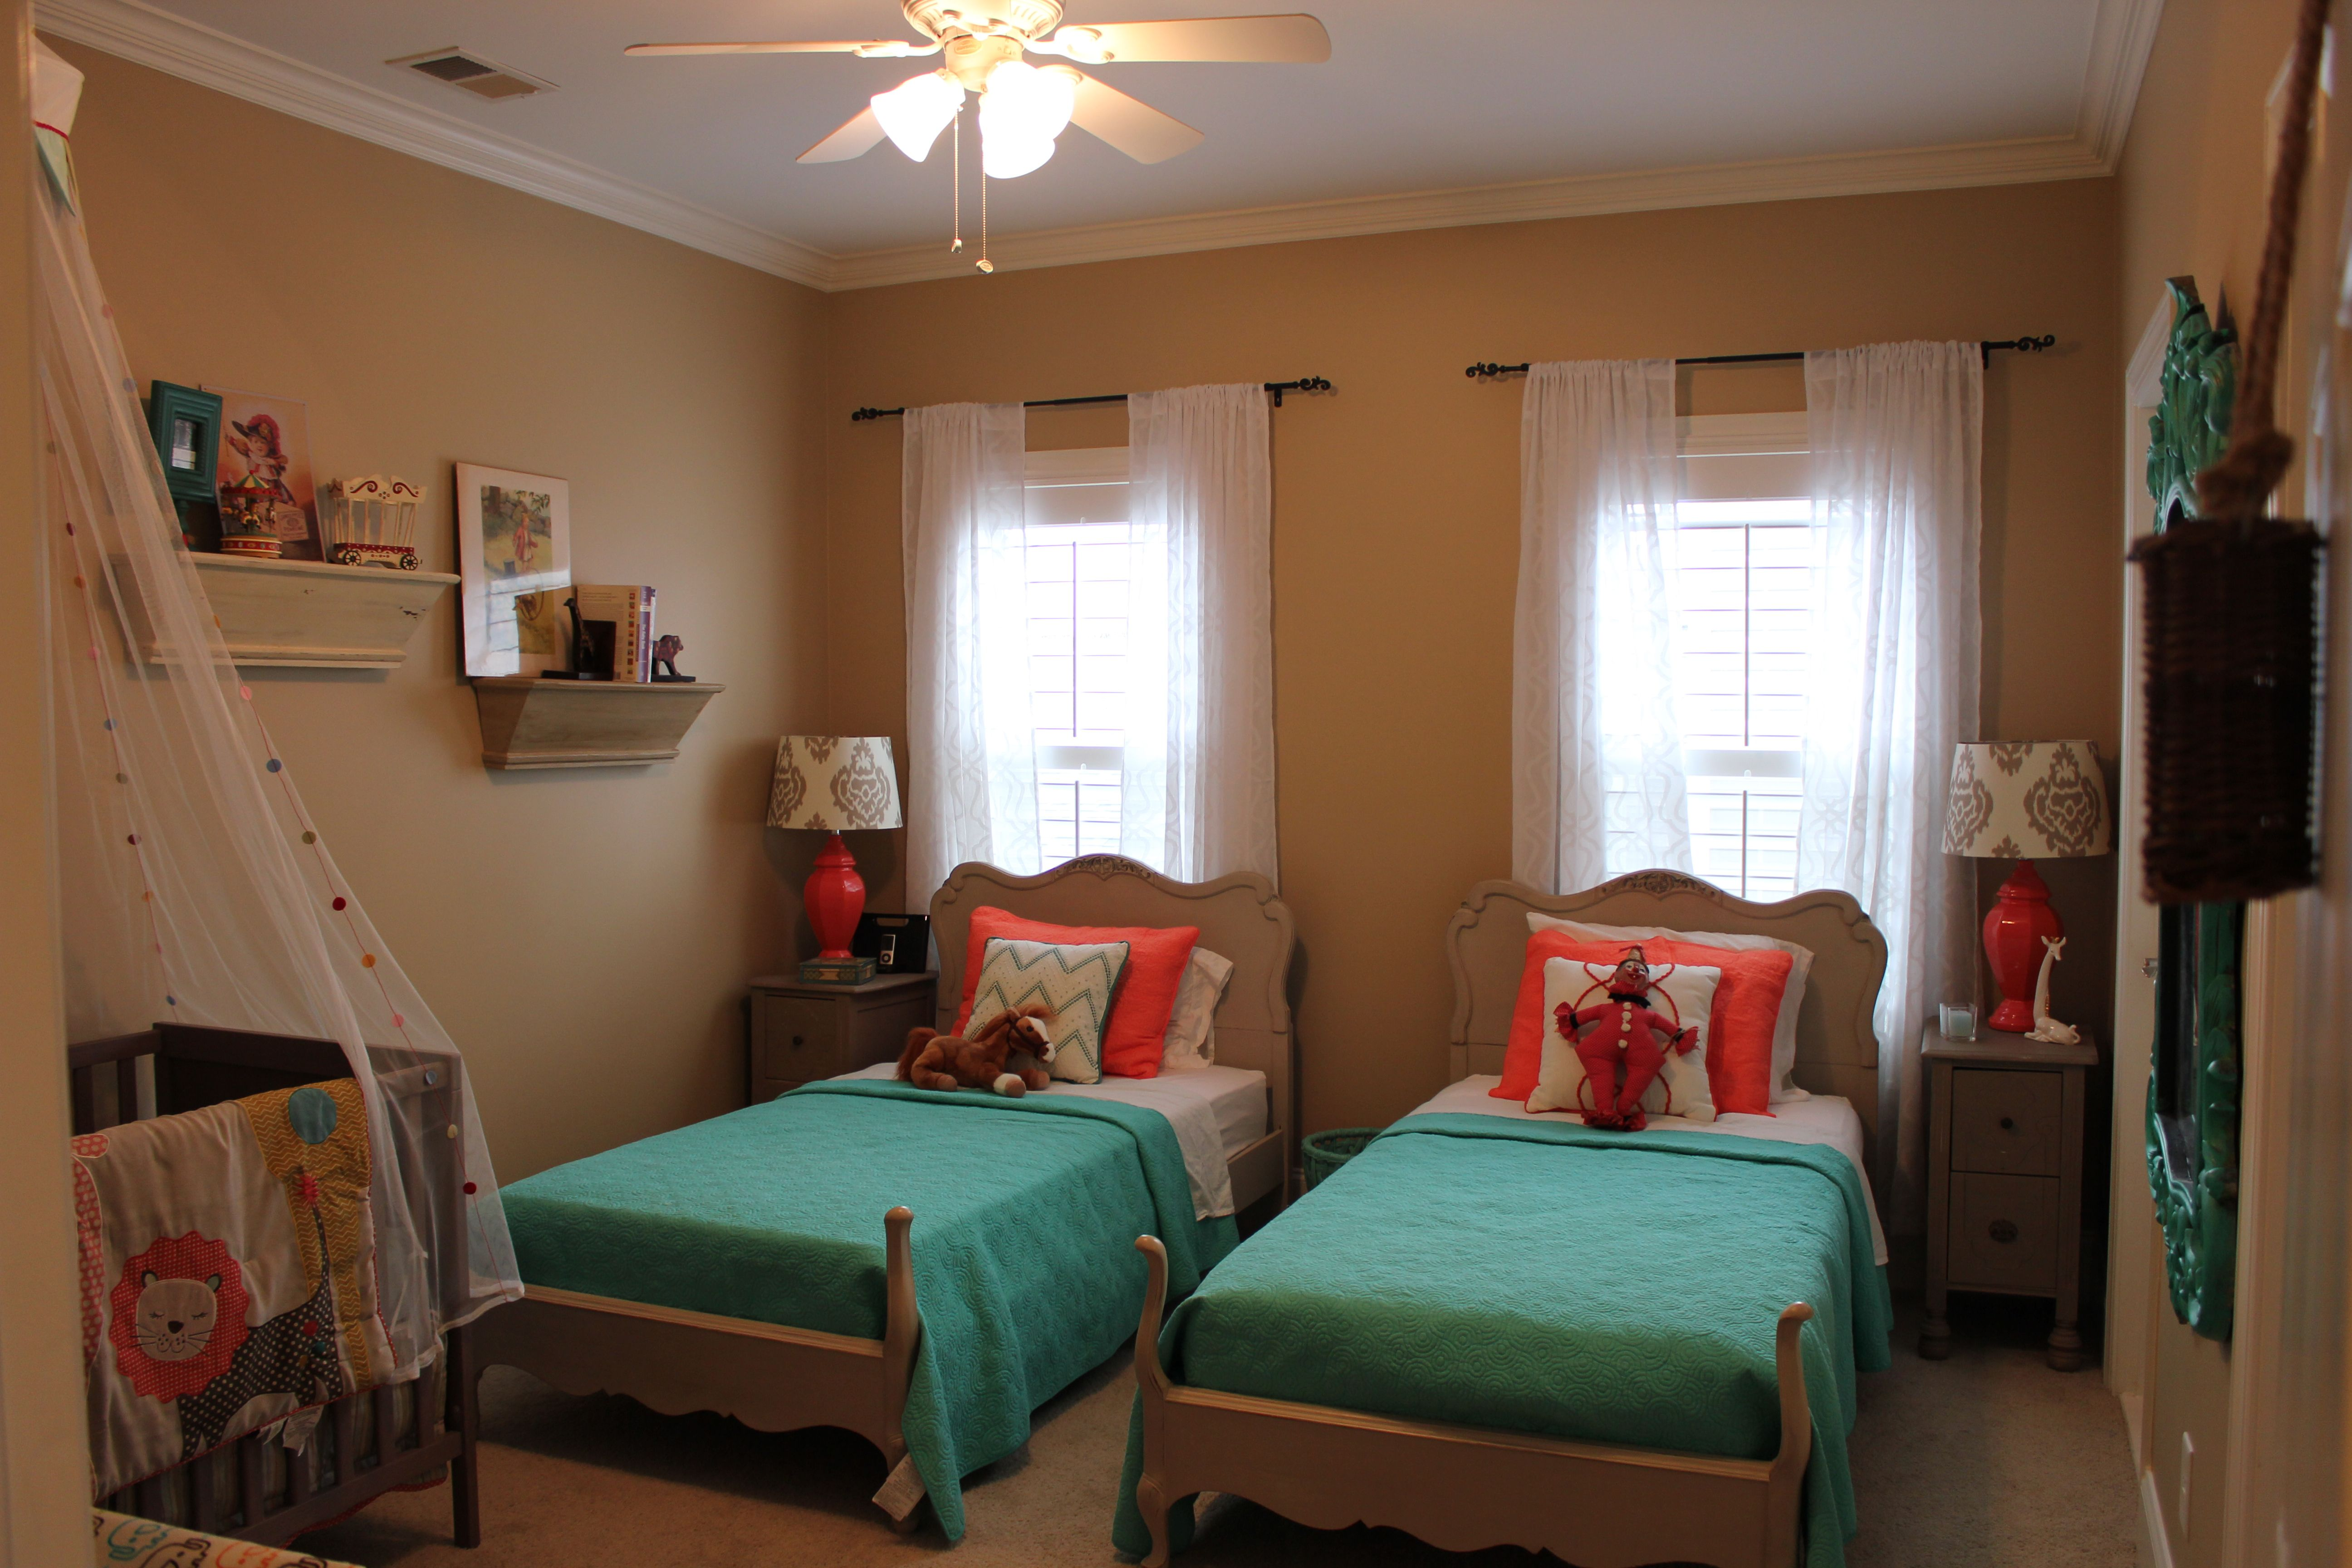 detail explaination for creative twin bed ideas small ...